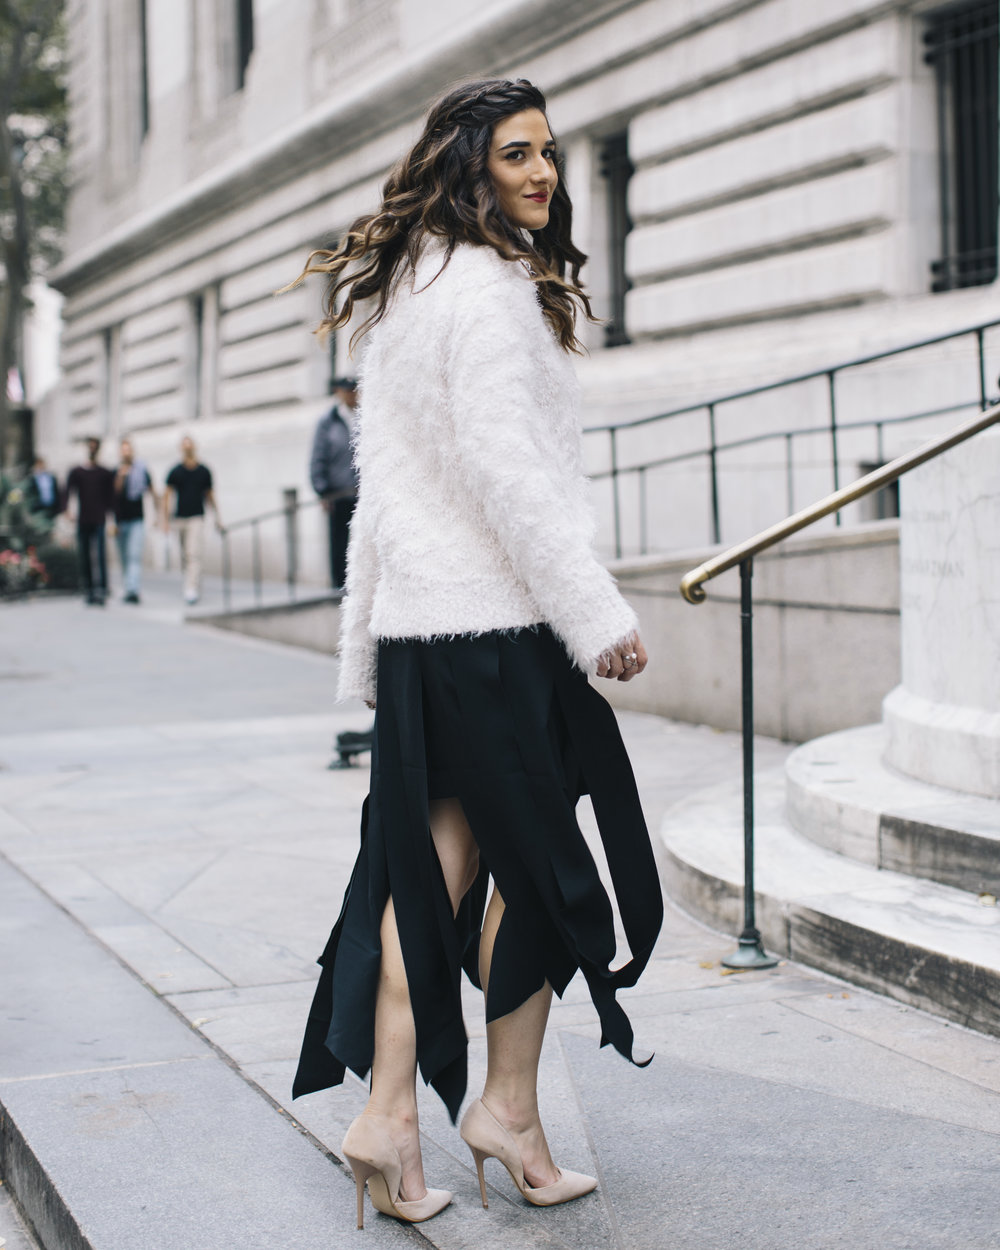 Shopping with Octer Fringe Skirt Louboutins & Love Fashion Blog Esther Santer NYC Street Style Blogger Outfit OOTD Buy Trendy Sweater Cozy Zara Steve Madden Nude Heels Neutral Colors Navy White Winter New York City Beautiful Photoshoot Hair Girl Women.jpg